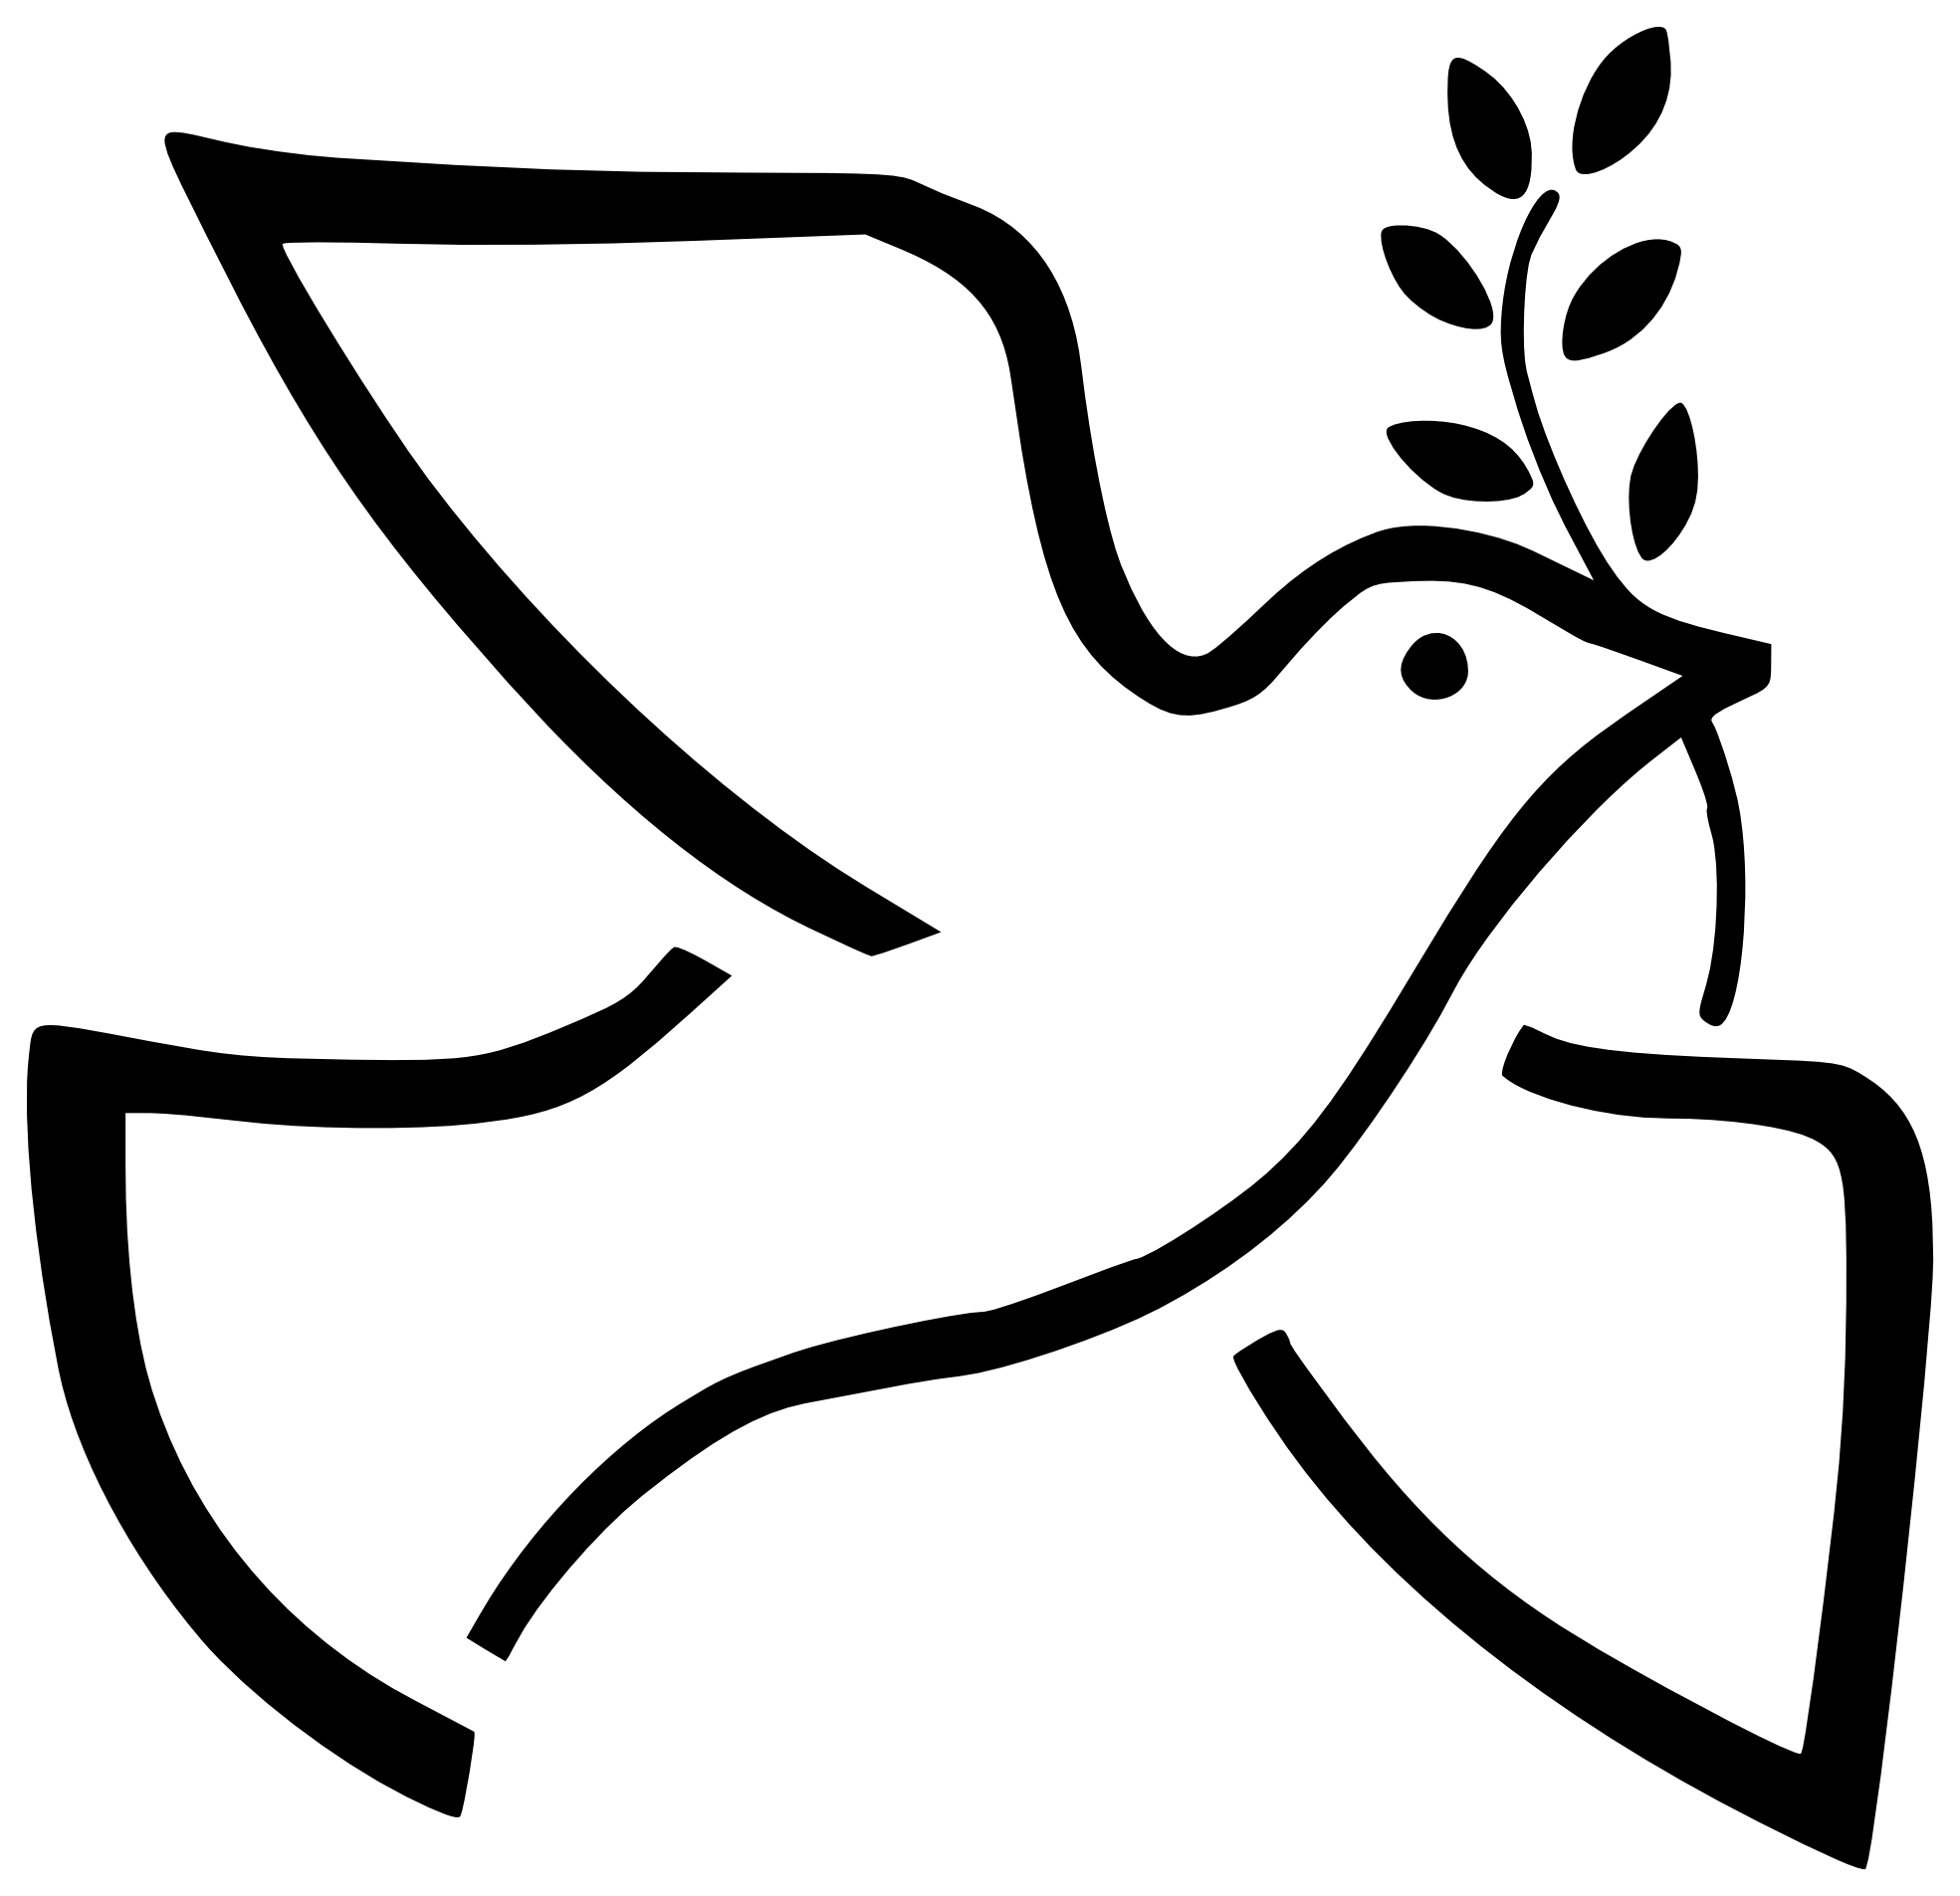 Peace Dove Clipart - Clipart Kid | Sunday school crafts | Pinterest ... clip art transparent download